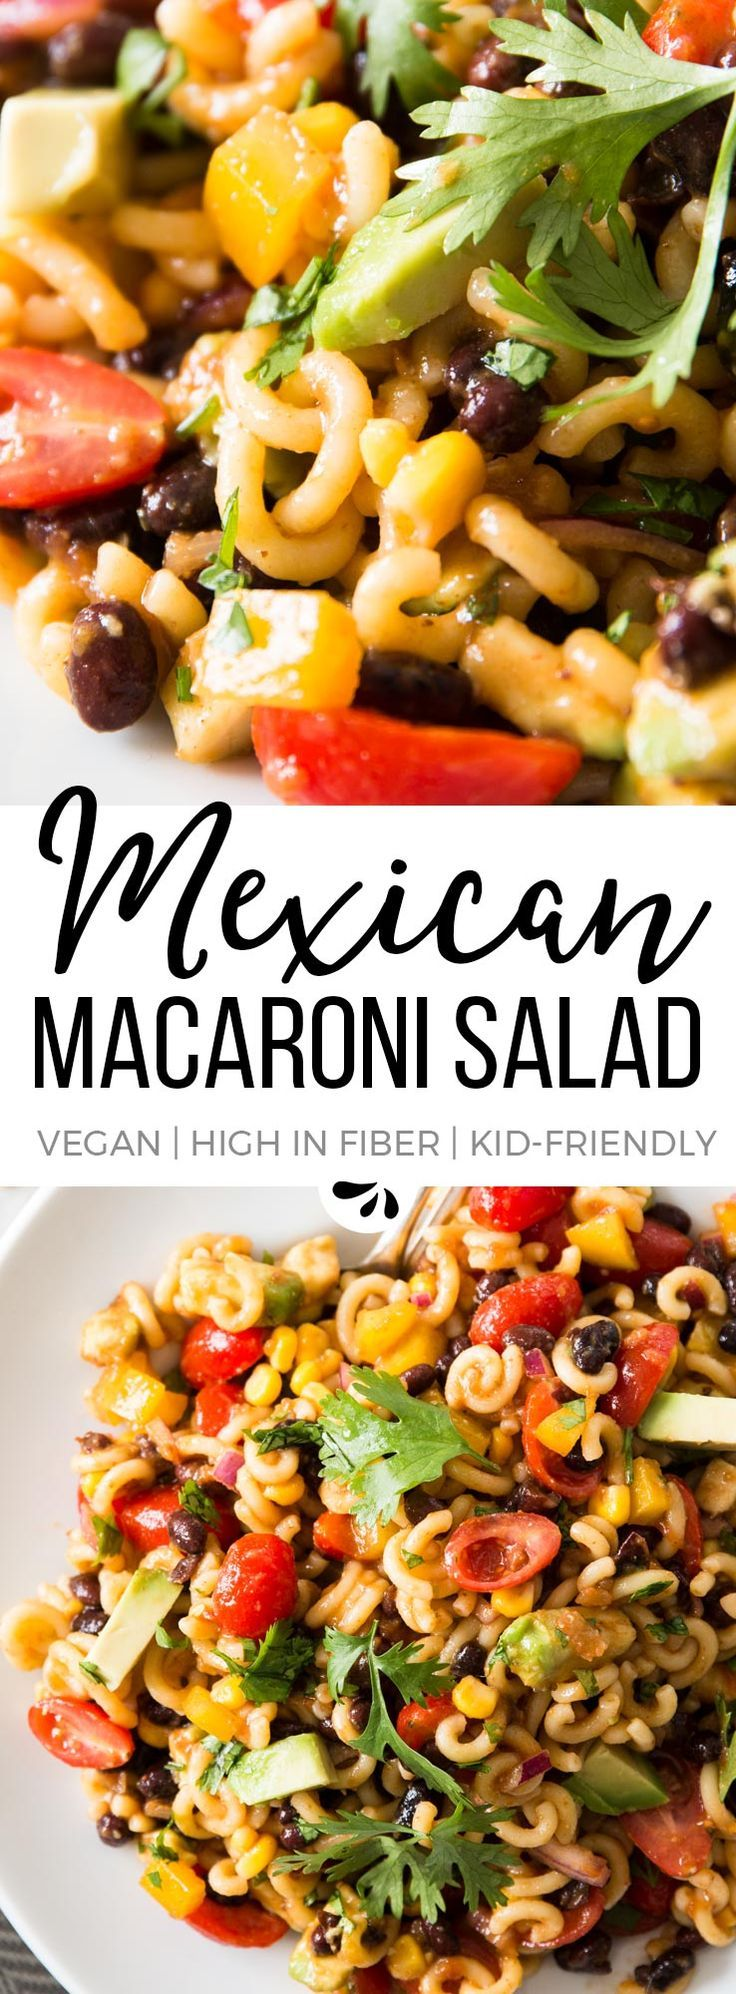 This Mexican Macaroni Salad is secretly healthy! Vegan, gluten free option and SO colorful! Make it for your next summer BBQ party or potluck - nobody will guess it's actually good for you. It's the p (Mexican Recipes For Dinner)